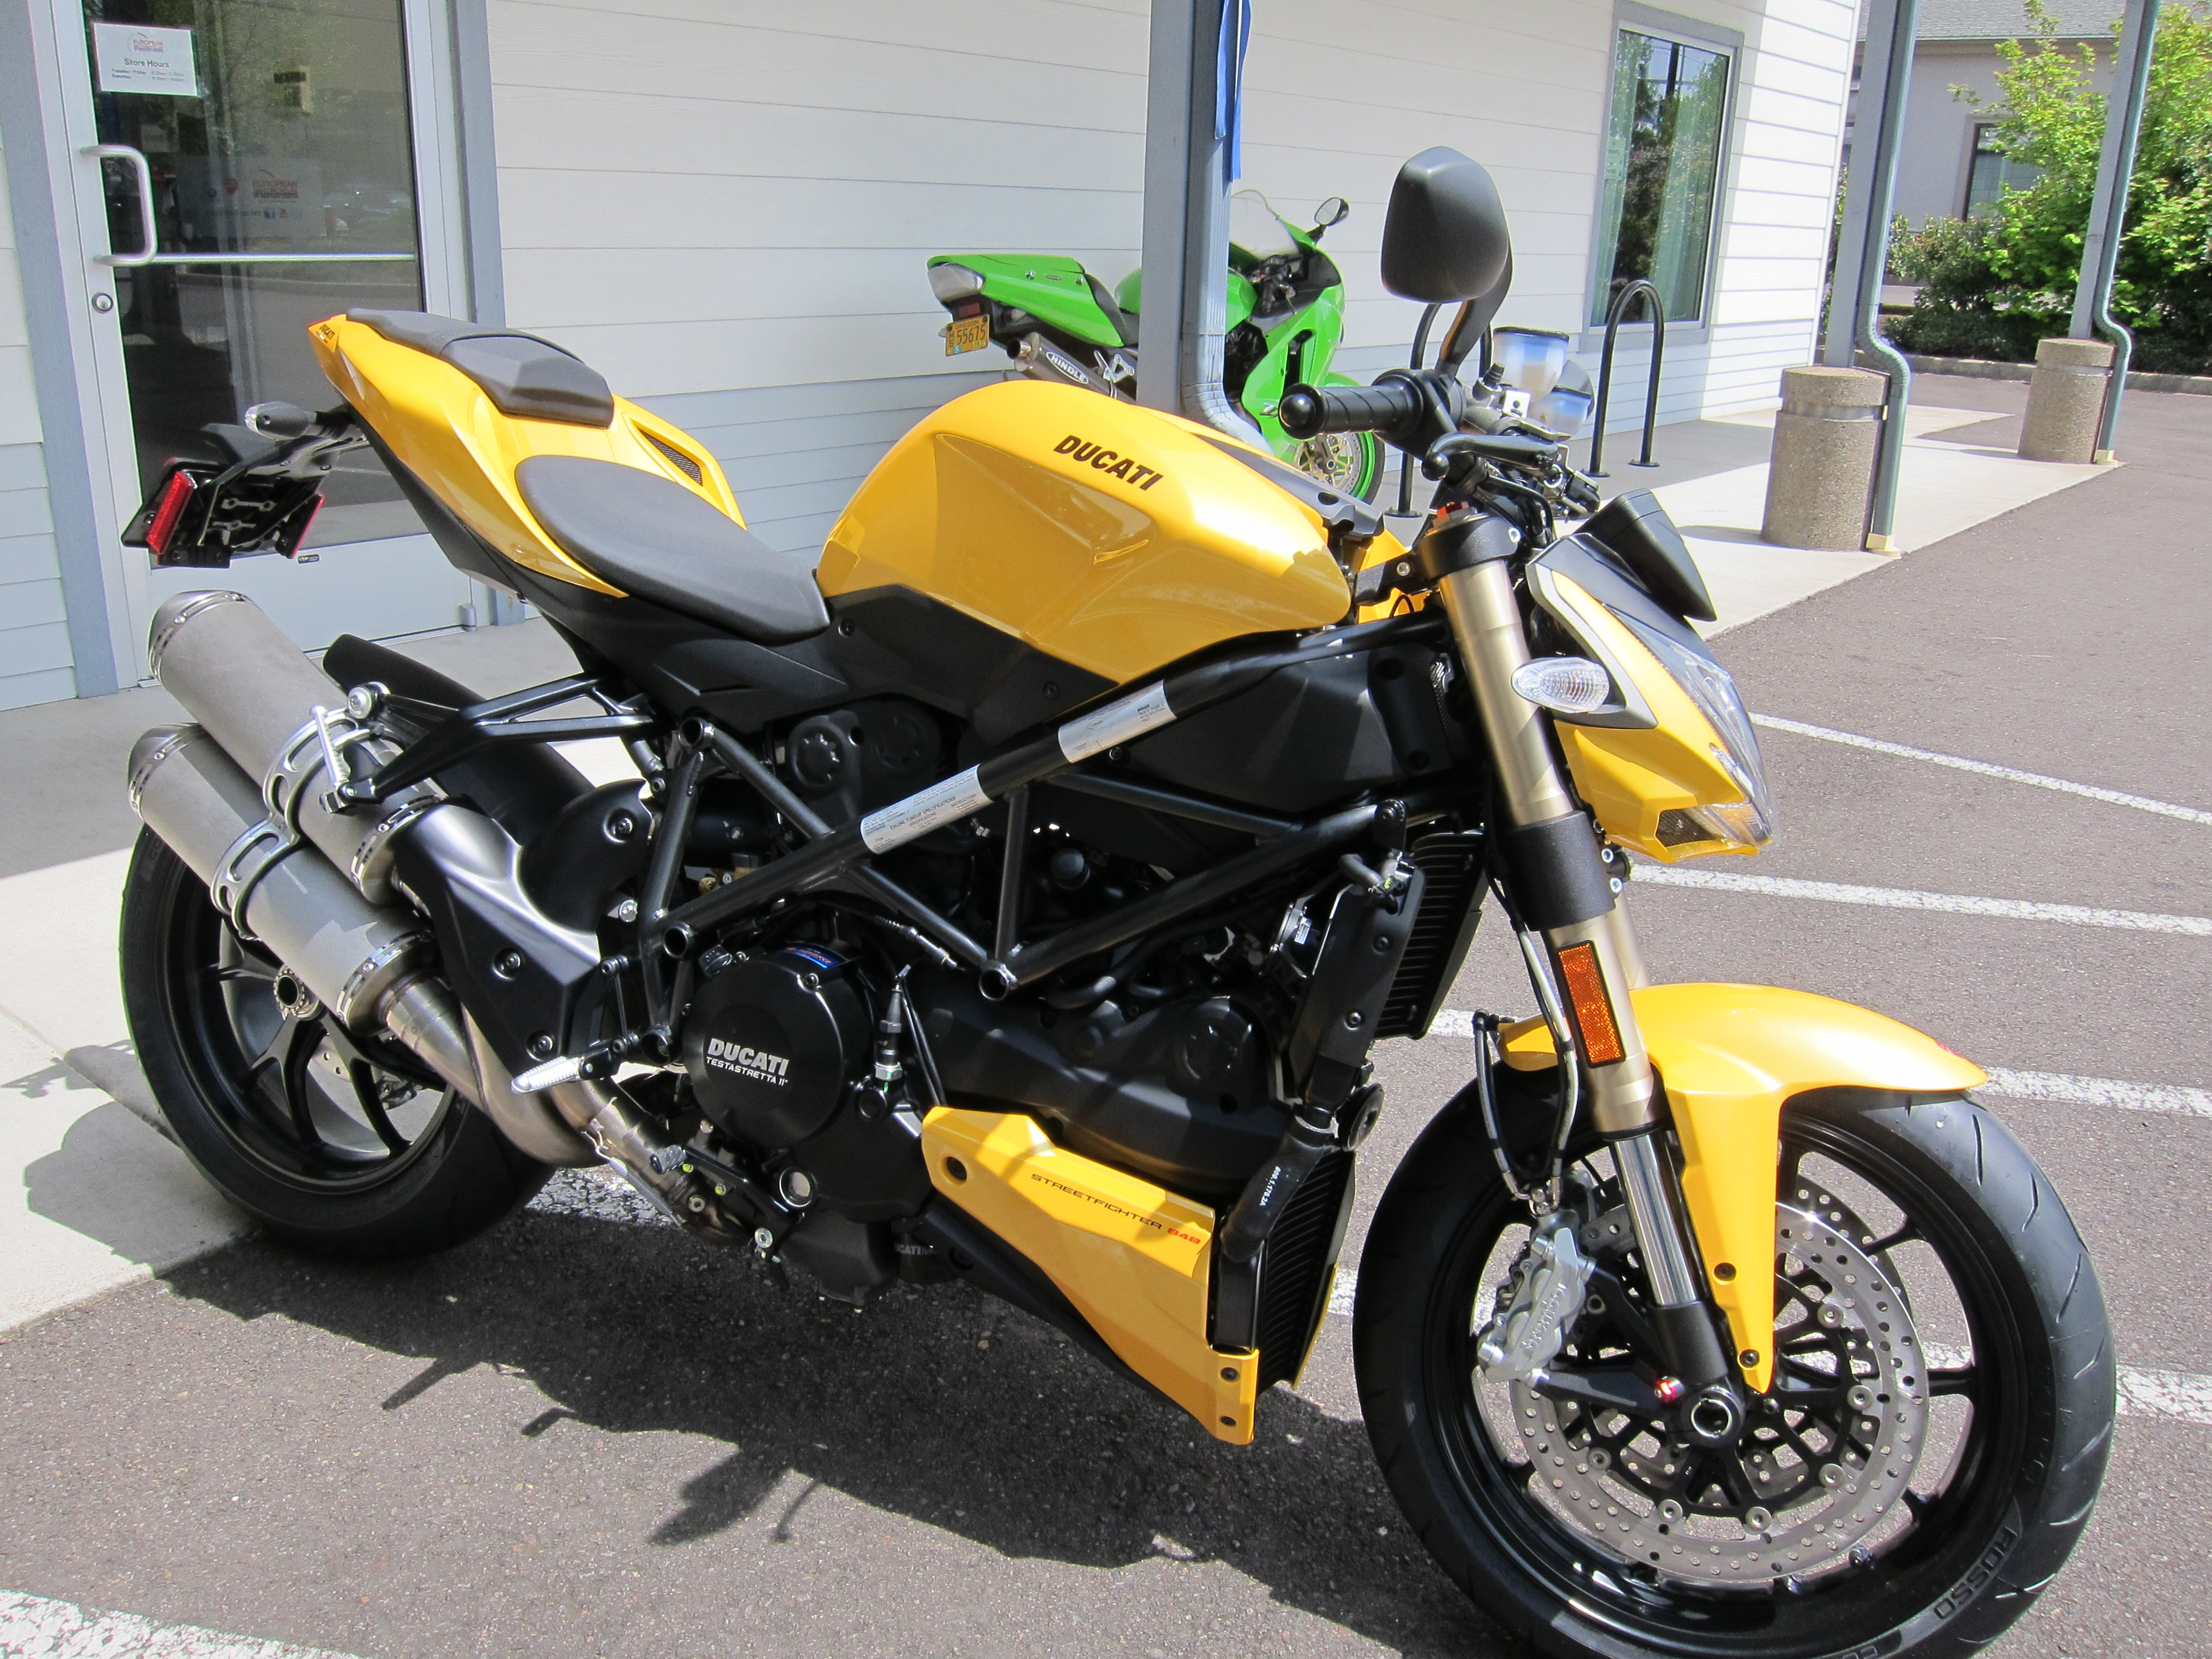 Ducati Streetfighter 848 – First ride | I'd rather be riding…